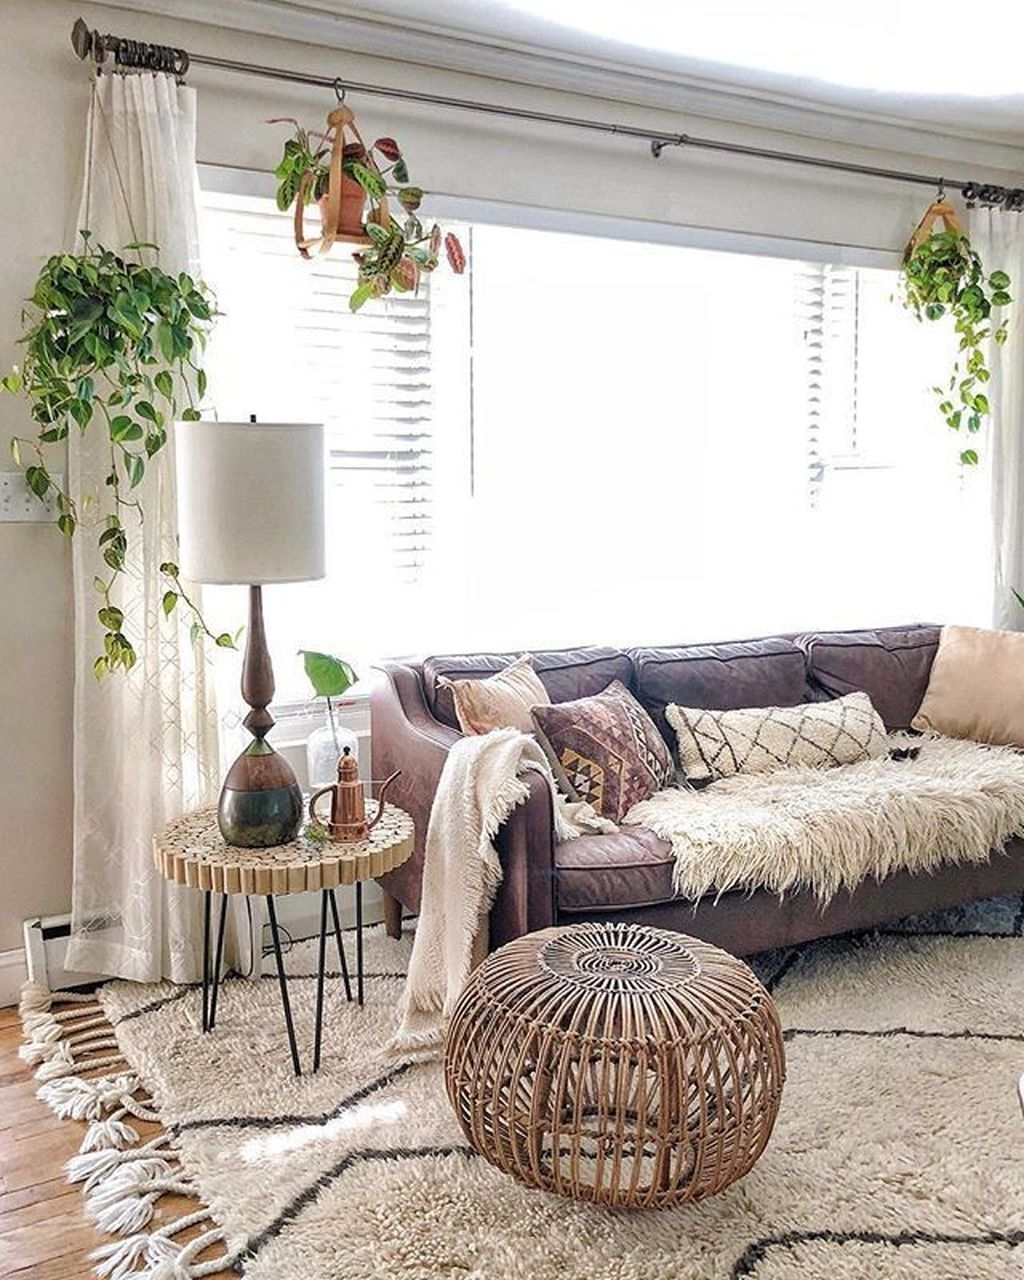 Newest Living Room Apartment Design Ideas For Your Apartment30